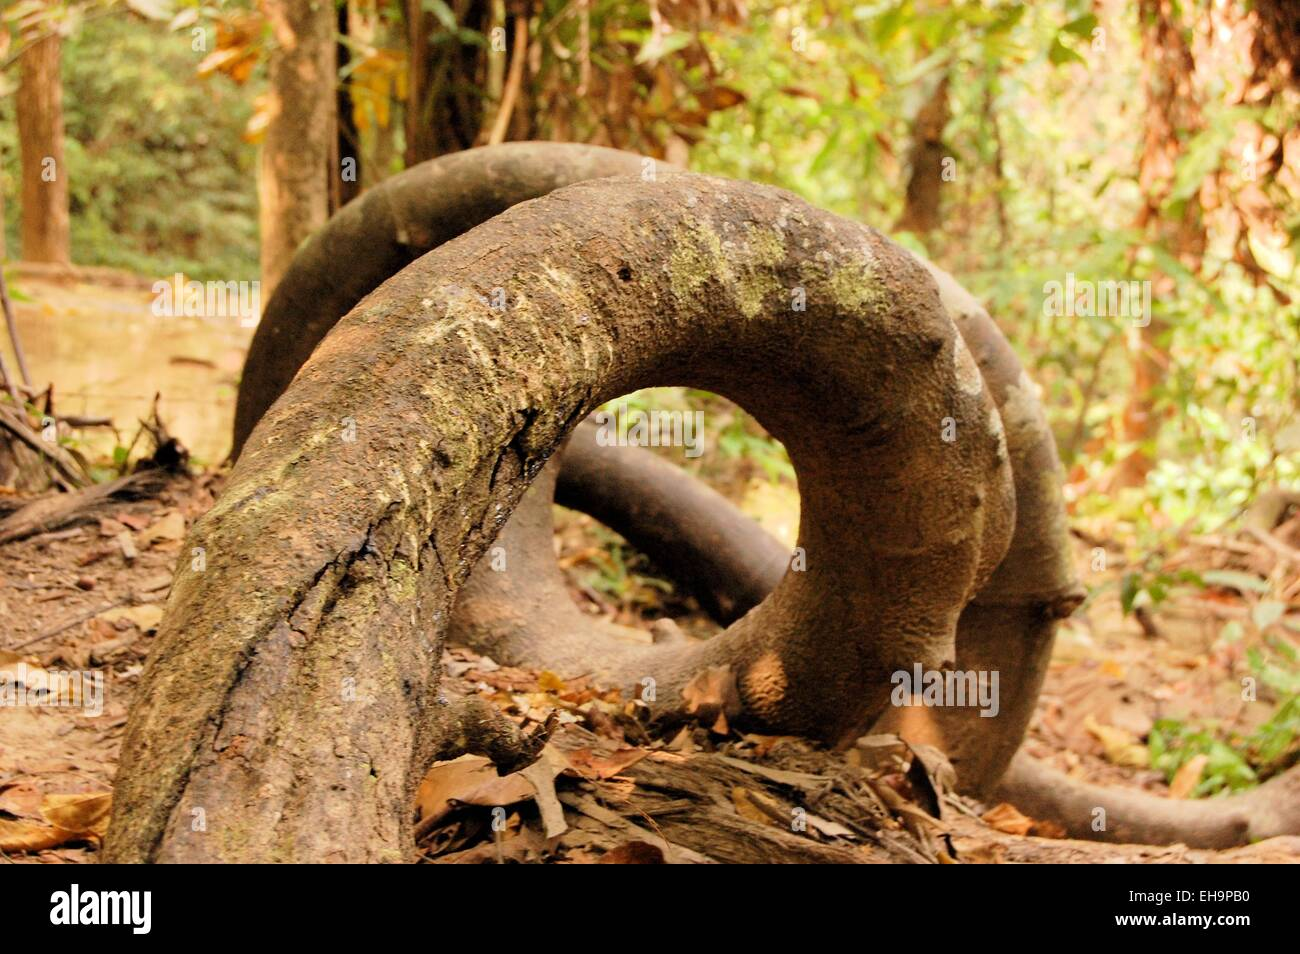 Twisted round tropical tree roots in rain forest - Stock Image